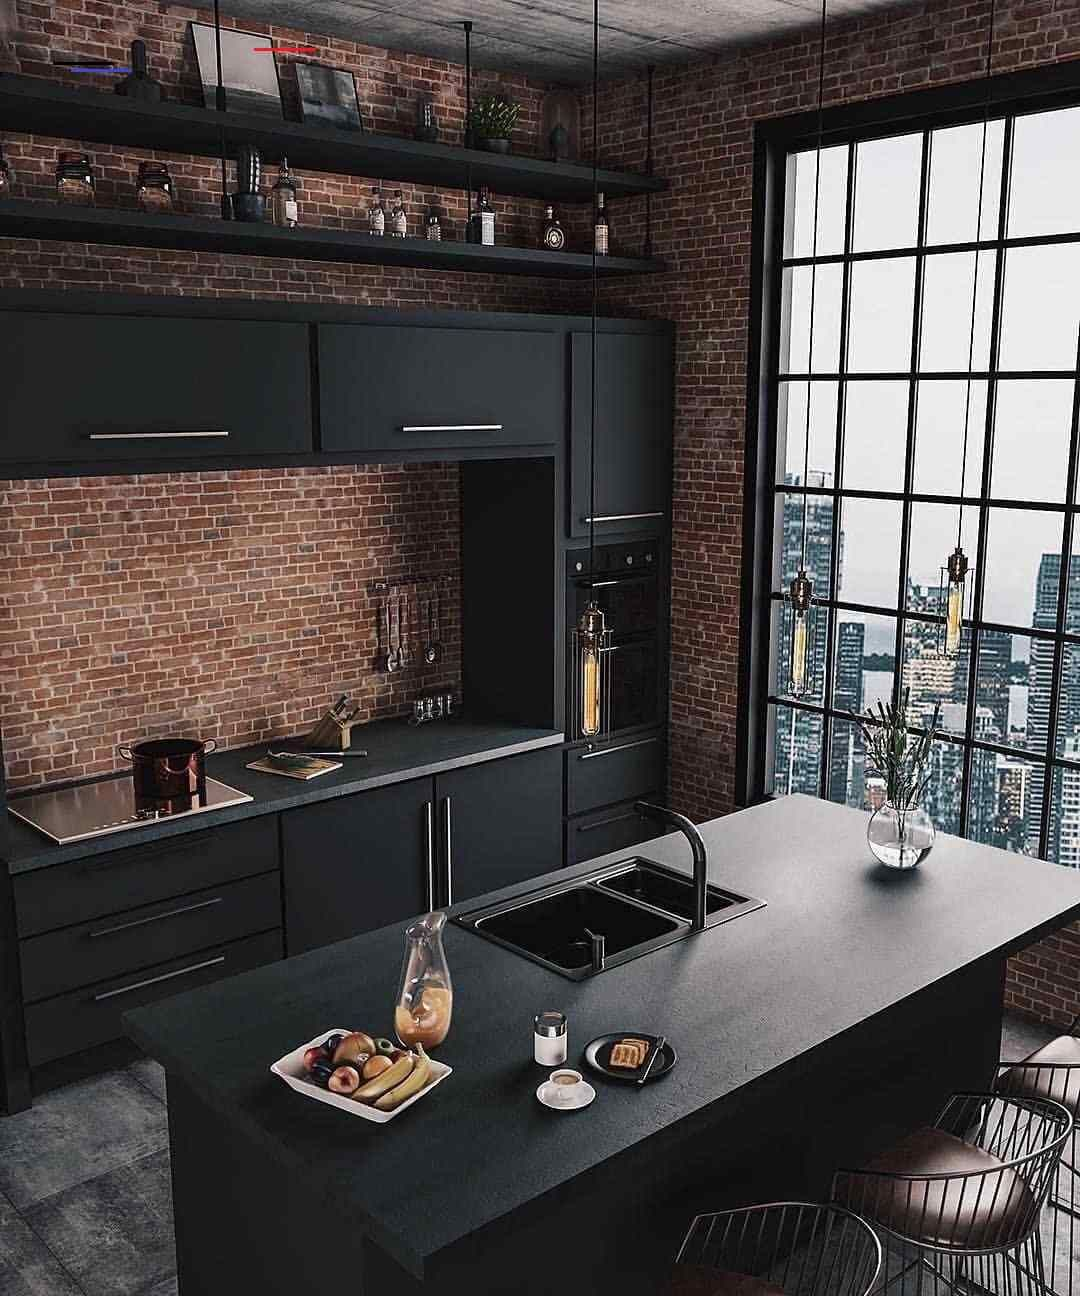 Kitcheninterior Industrial Kitchen Design Industrial Home Design Interior Design Kitchen